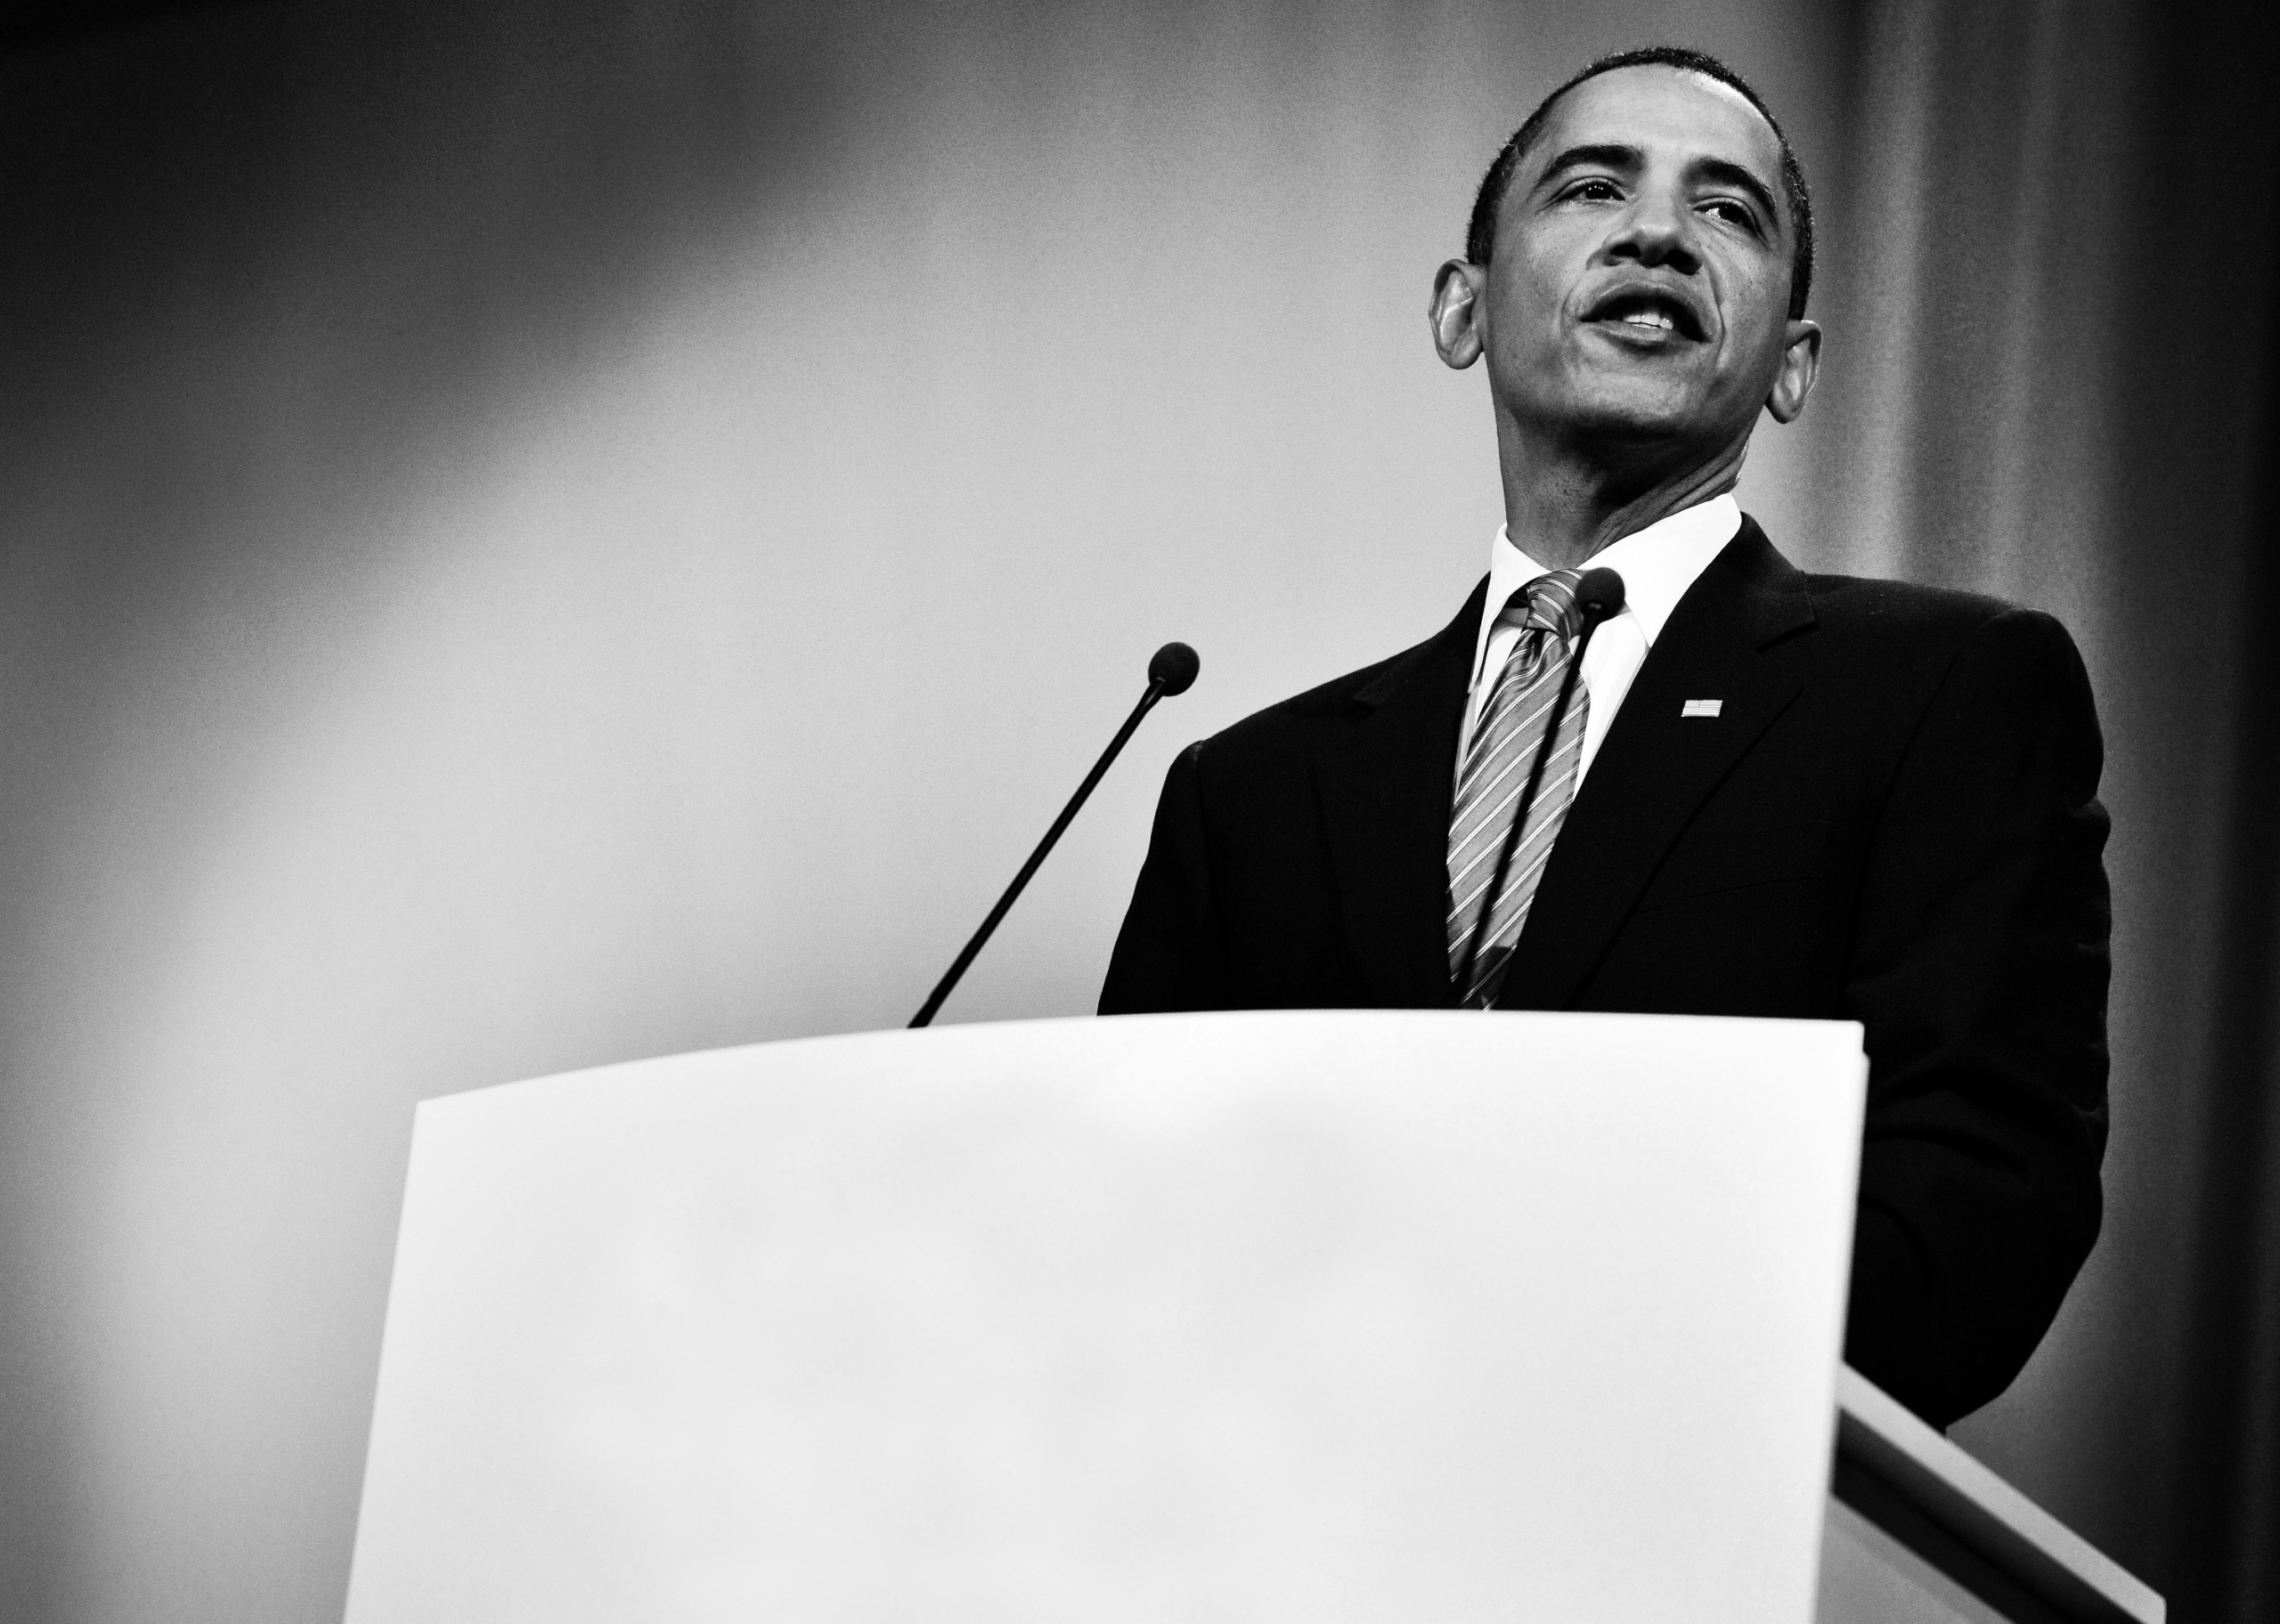 US President Barack Obama speaks during a plenary session at the Bella Center in Copenhagen on December 18, 2009 on the 12th day of the COP15 UN Climate Change Conference.